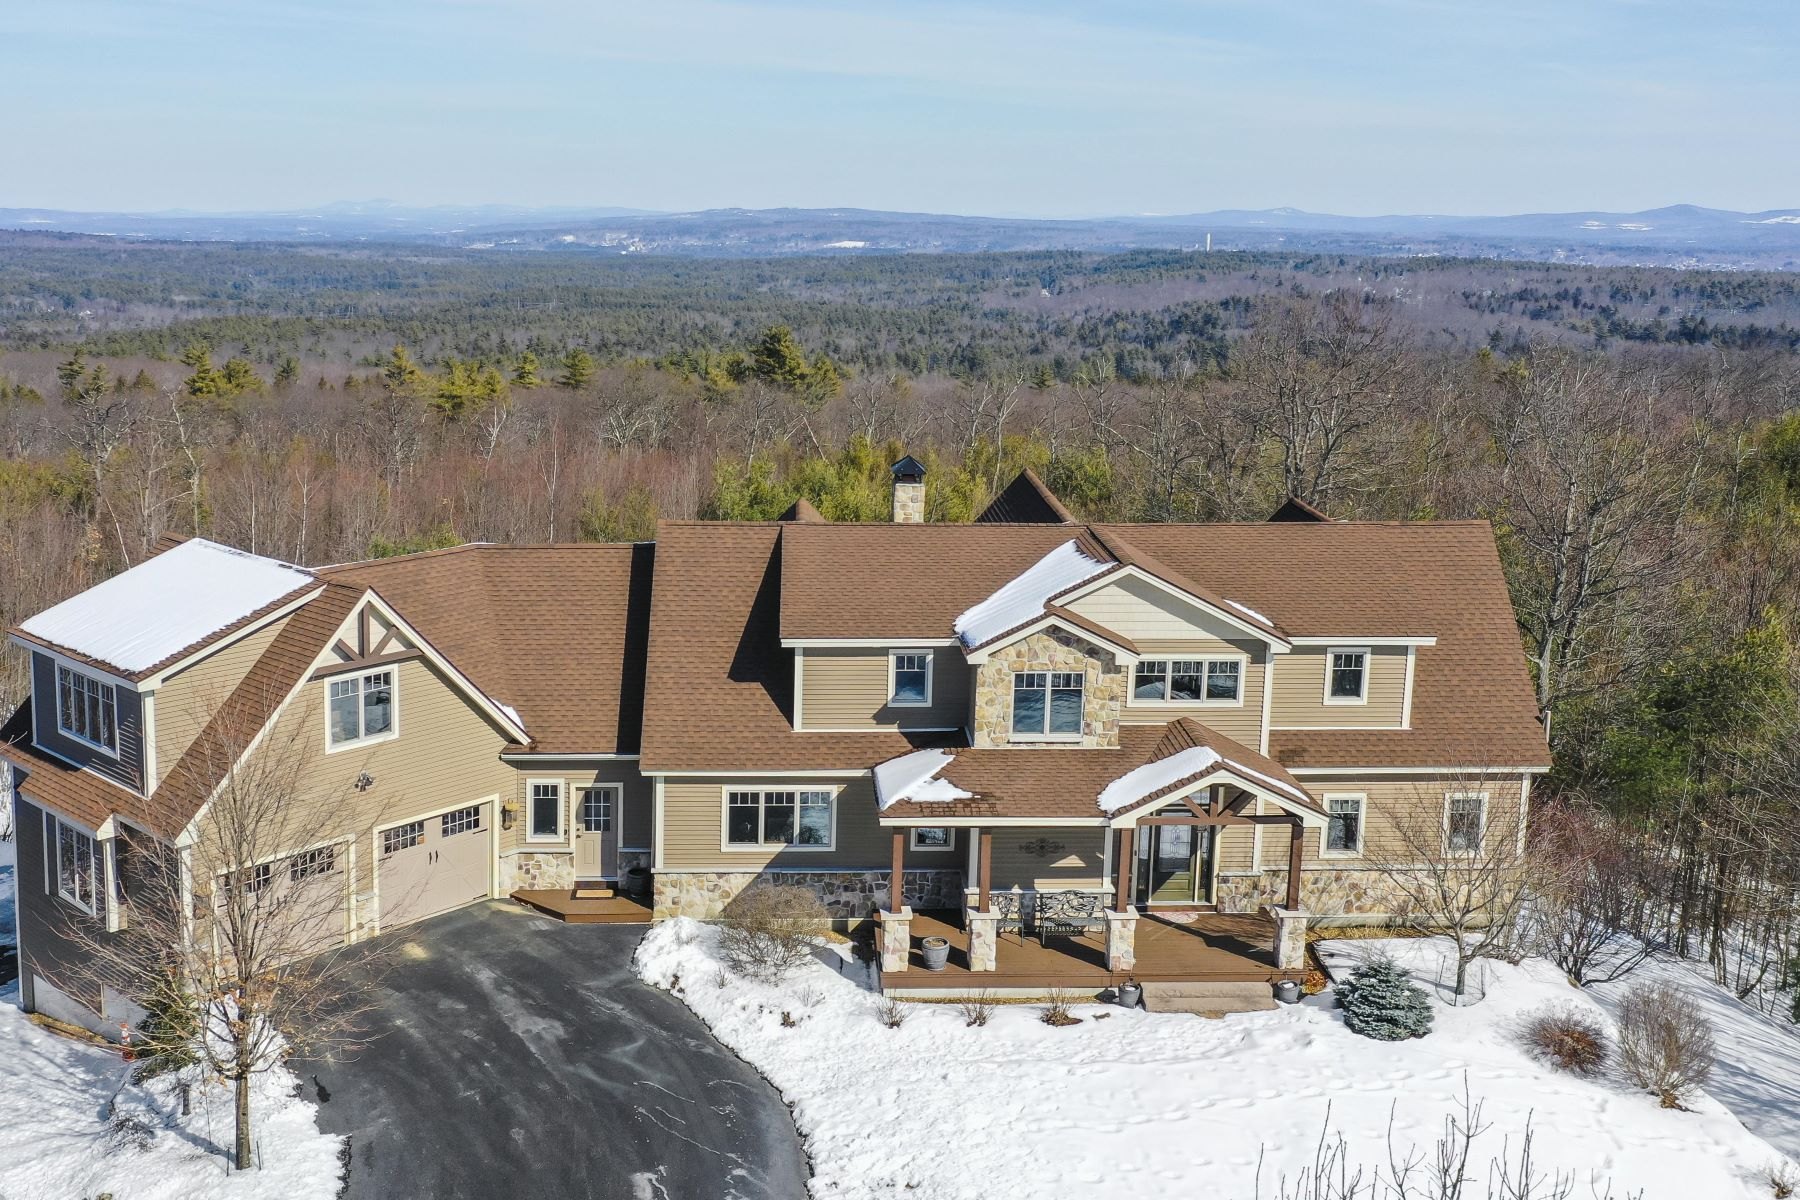 Single Family Homes for Sale at 8 Crescent Drive Bow, New Hampshire 03304 United States